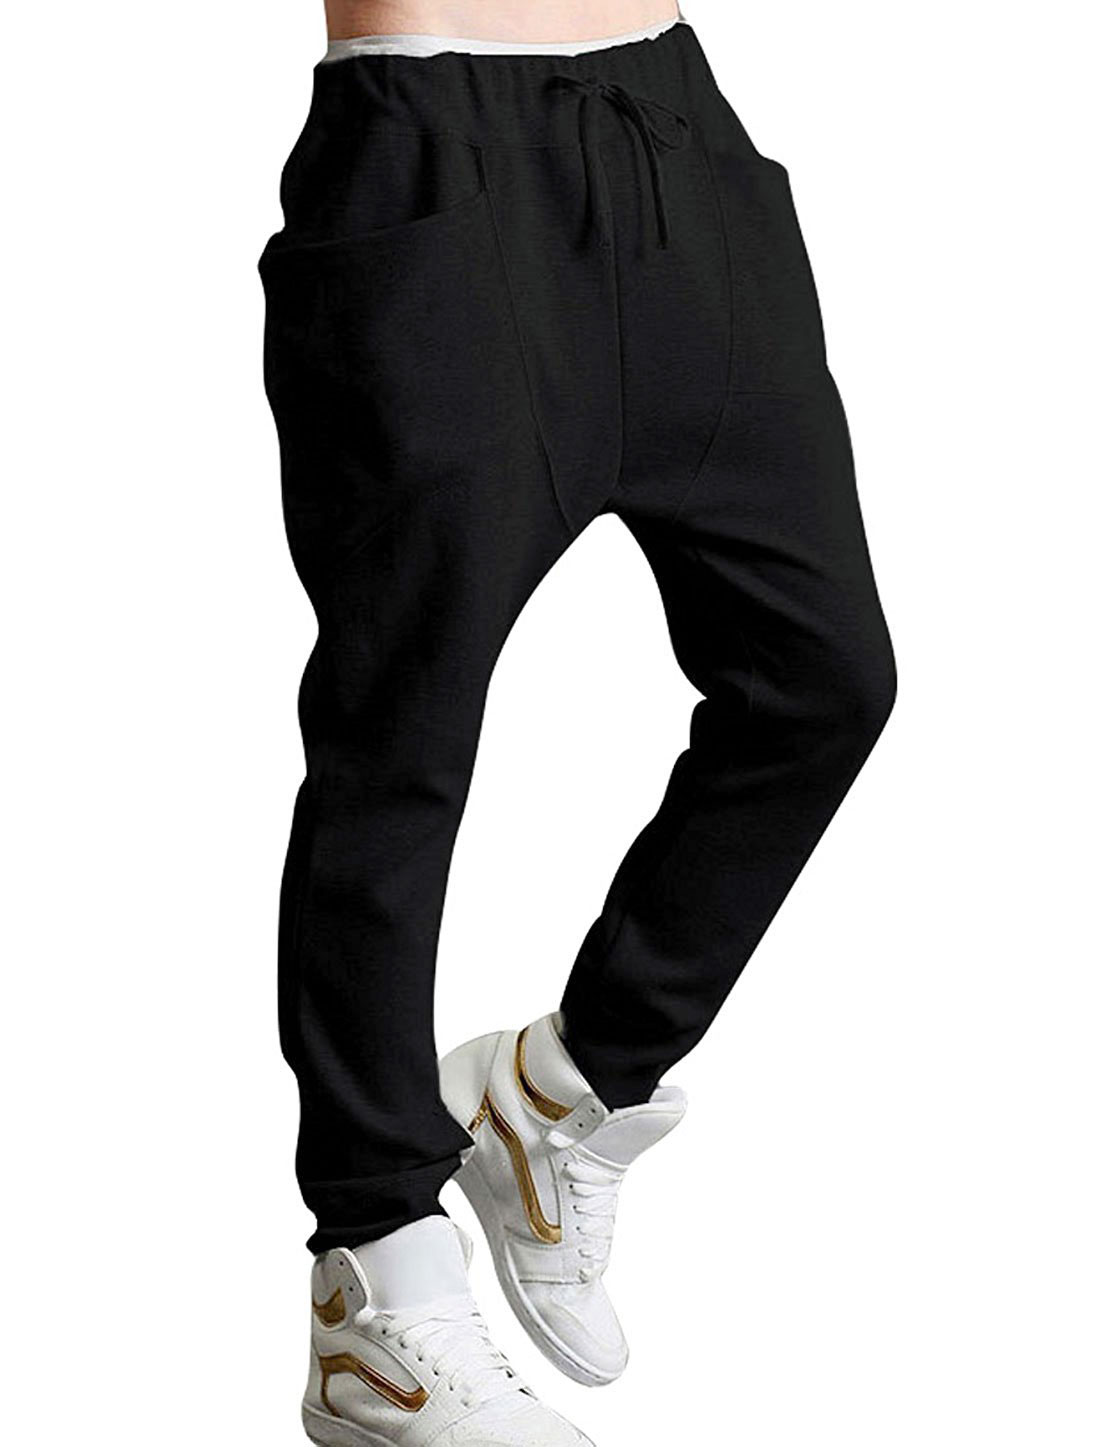 Double Pocket Stretchy Waist Black Casual Pants for Men W30